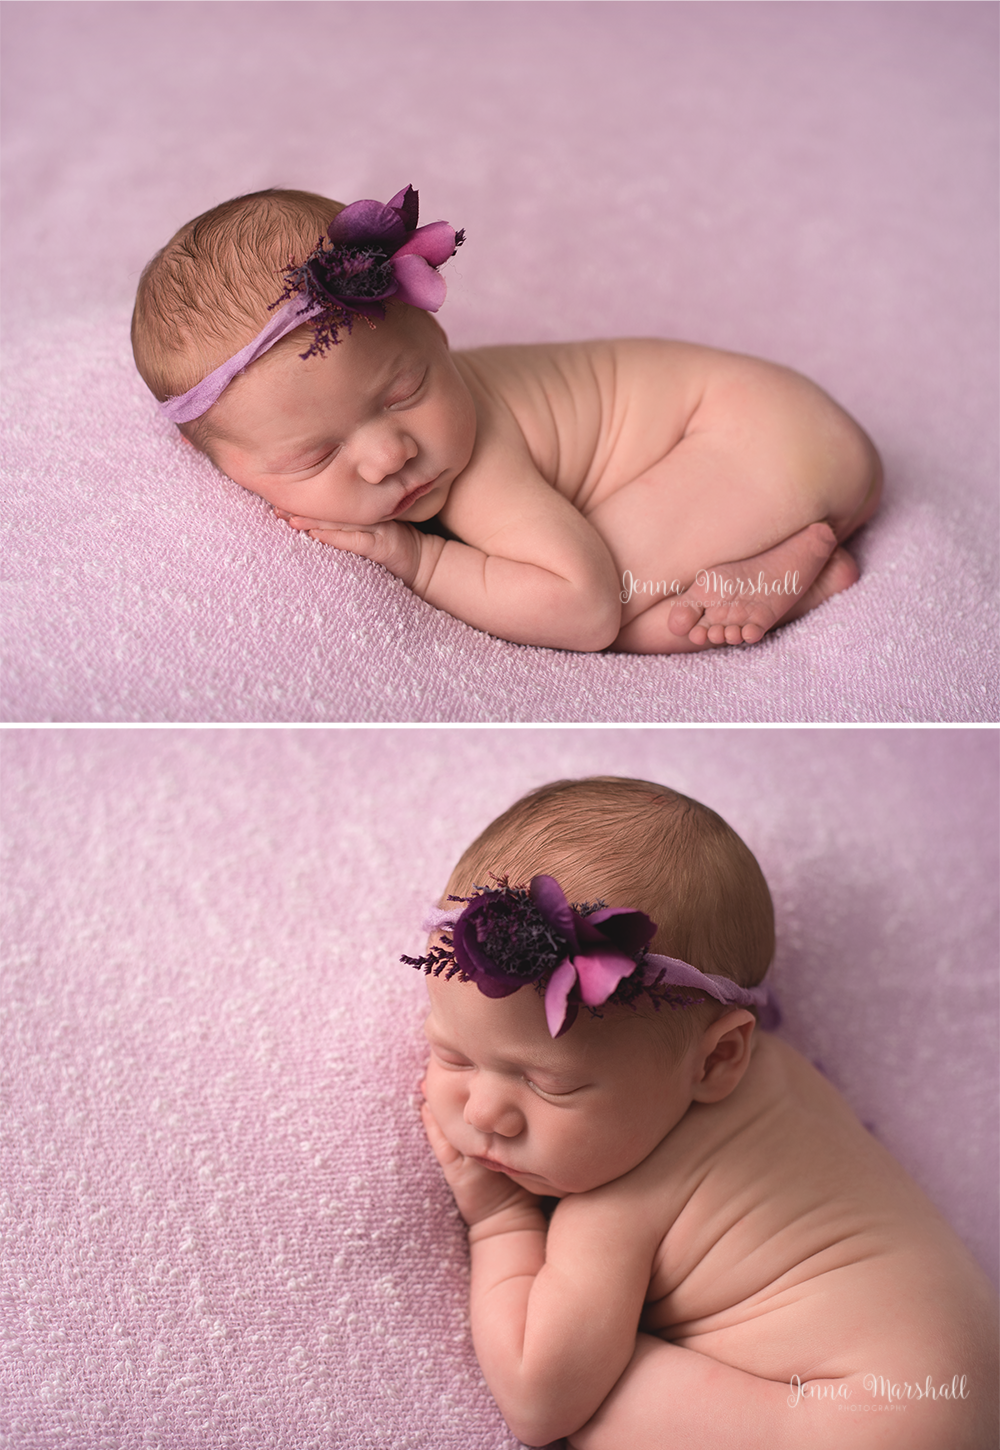 diptych-baby-photographer-hertfordshire-jenna-marshall-photography